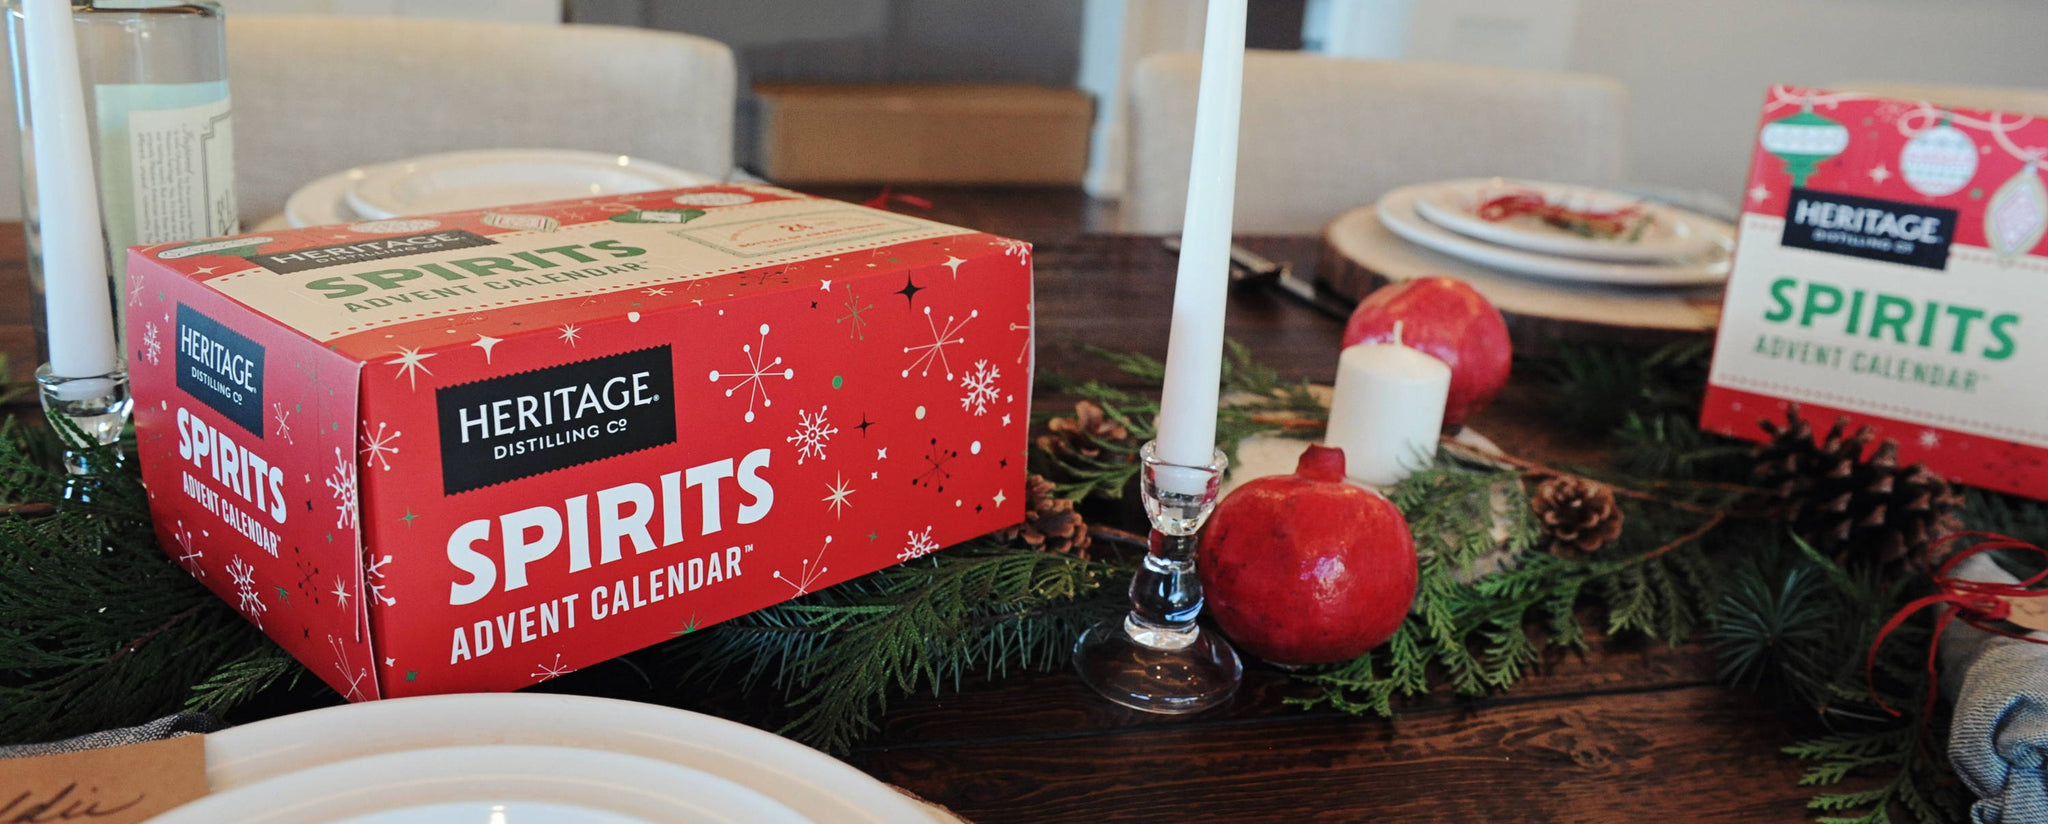 Things To Do With A Spirits Advent Calendar Heritage Distilling